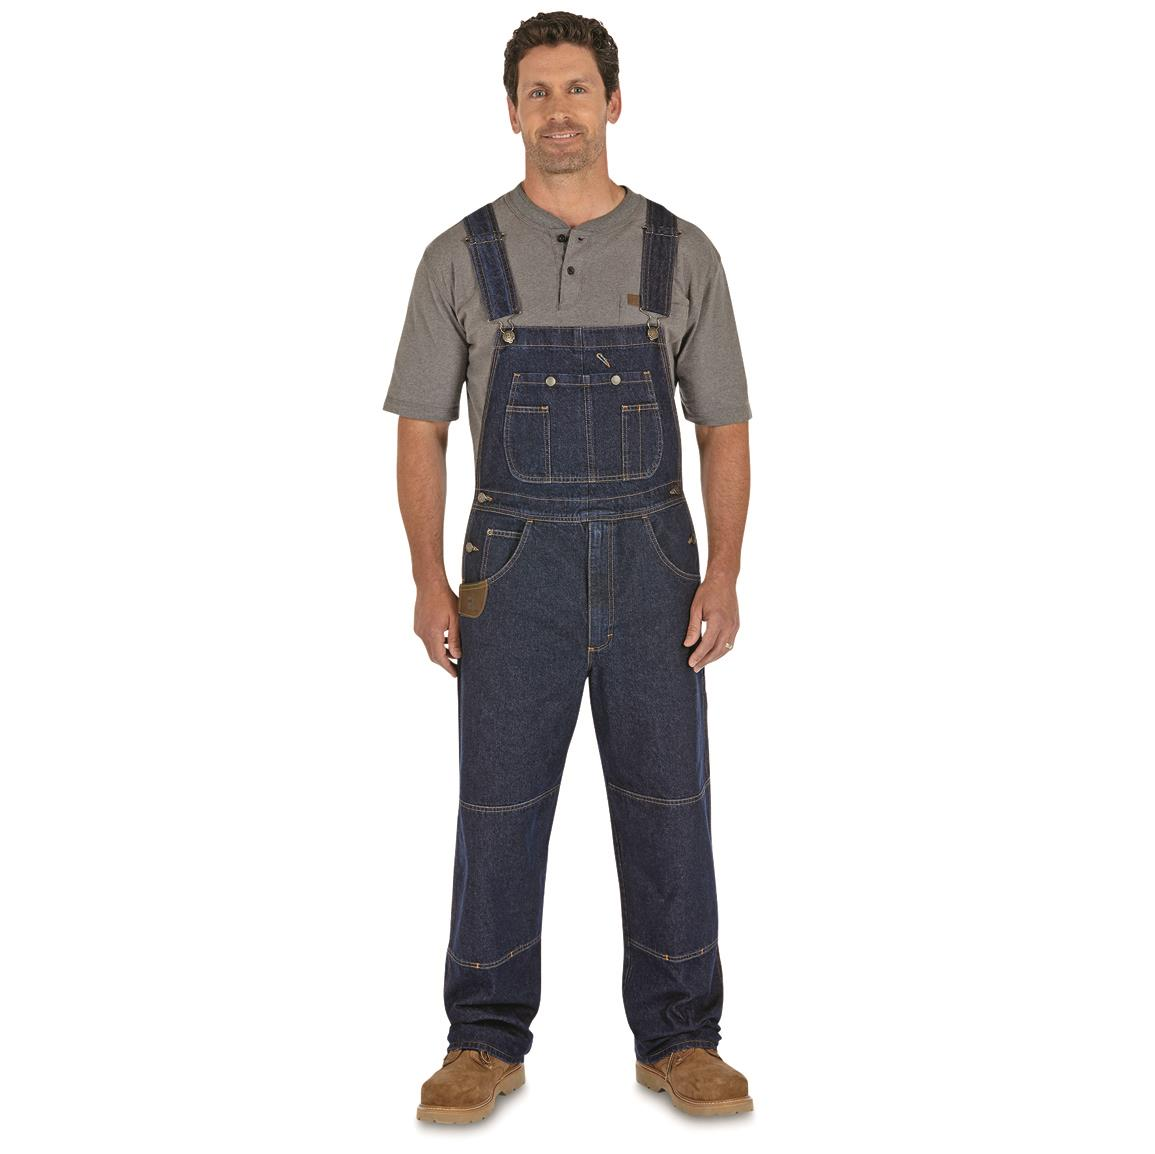 Wrangler RIGGS Workwear Men's Bib Overalls, Antique